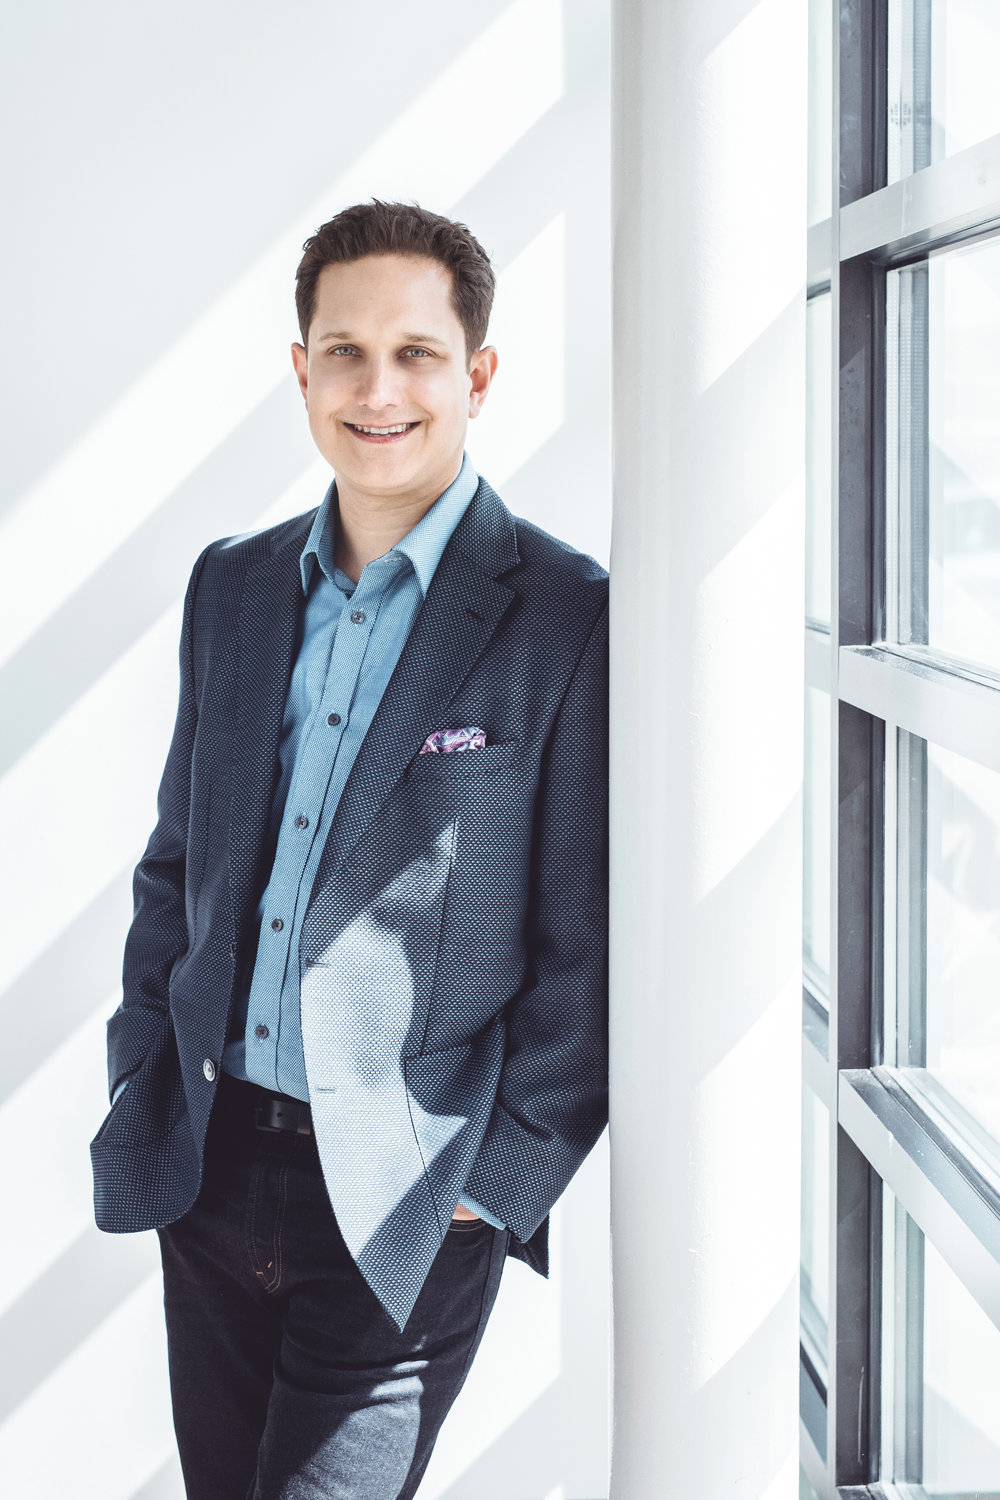 Jason Dorsey, president and co-founder of The Center for Generational Kinetics